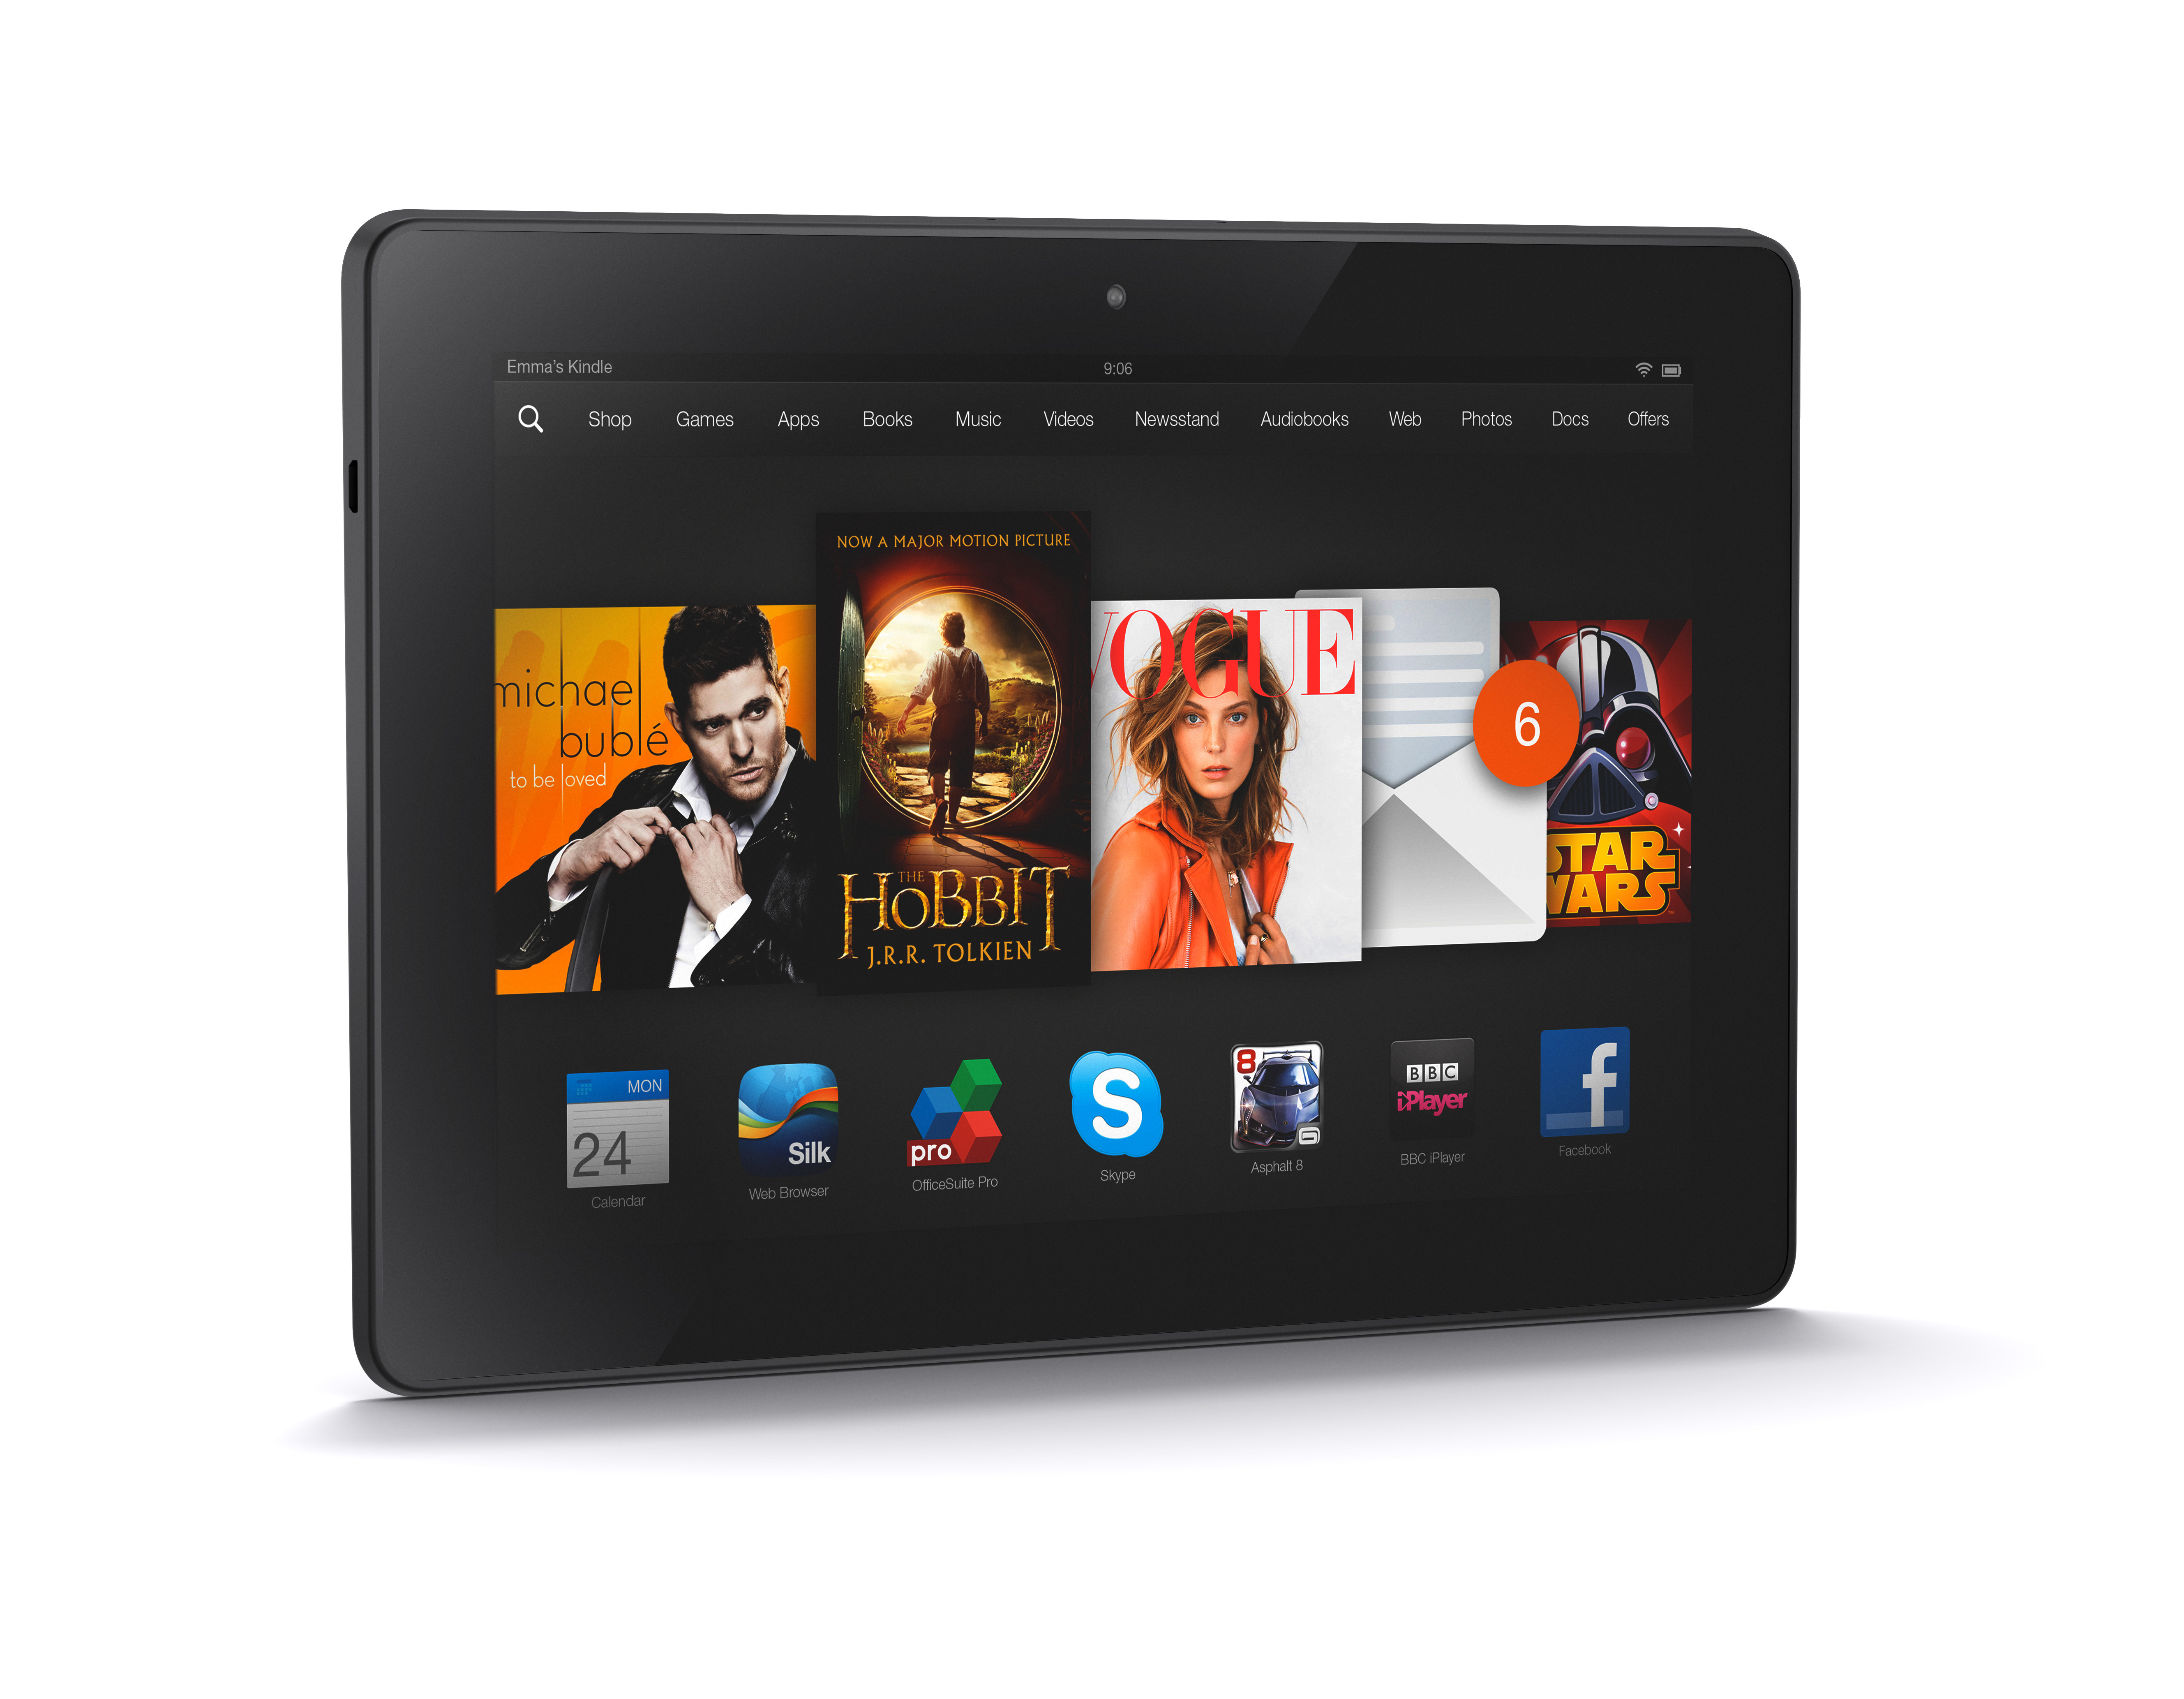 How To Root Amazon Kindle Fire Hdx 8 9 Guide Dottech